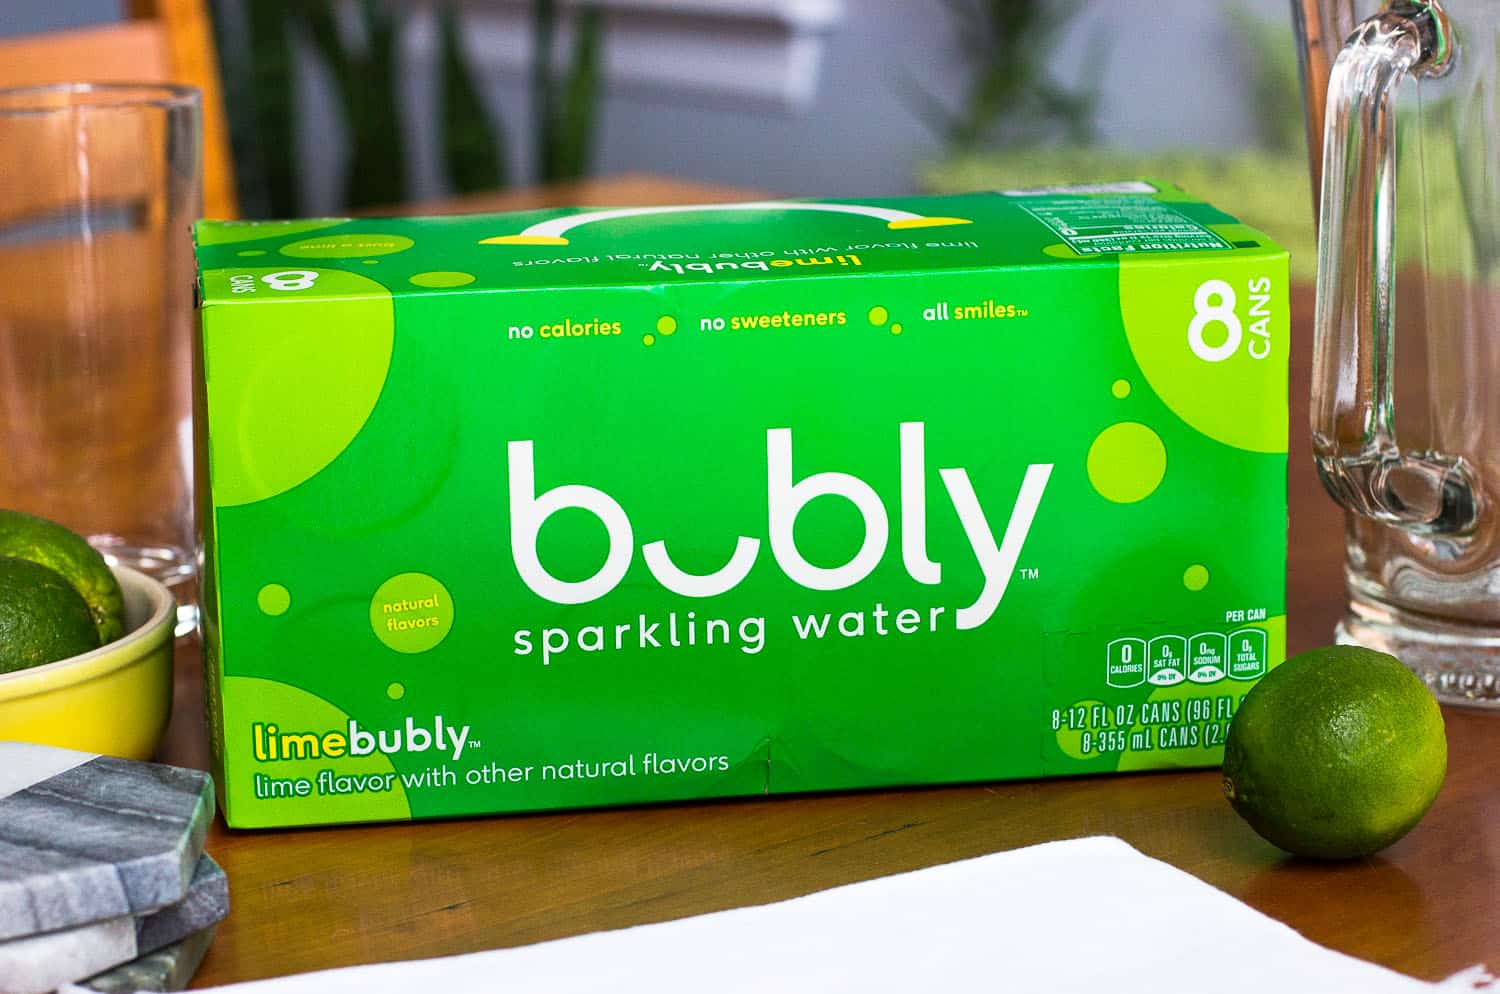 A package of lime bubly™ on a wooden table surrounded by cloth napkins, limes, coasters, empty glasses, and an empty serving pitcher